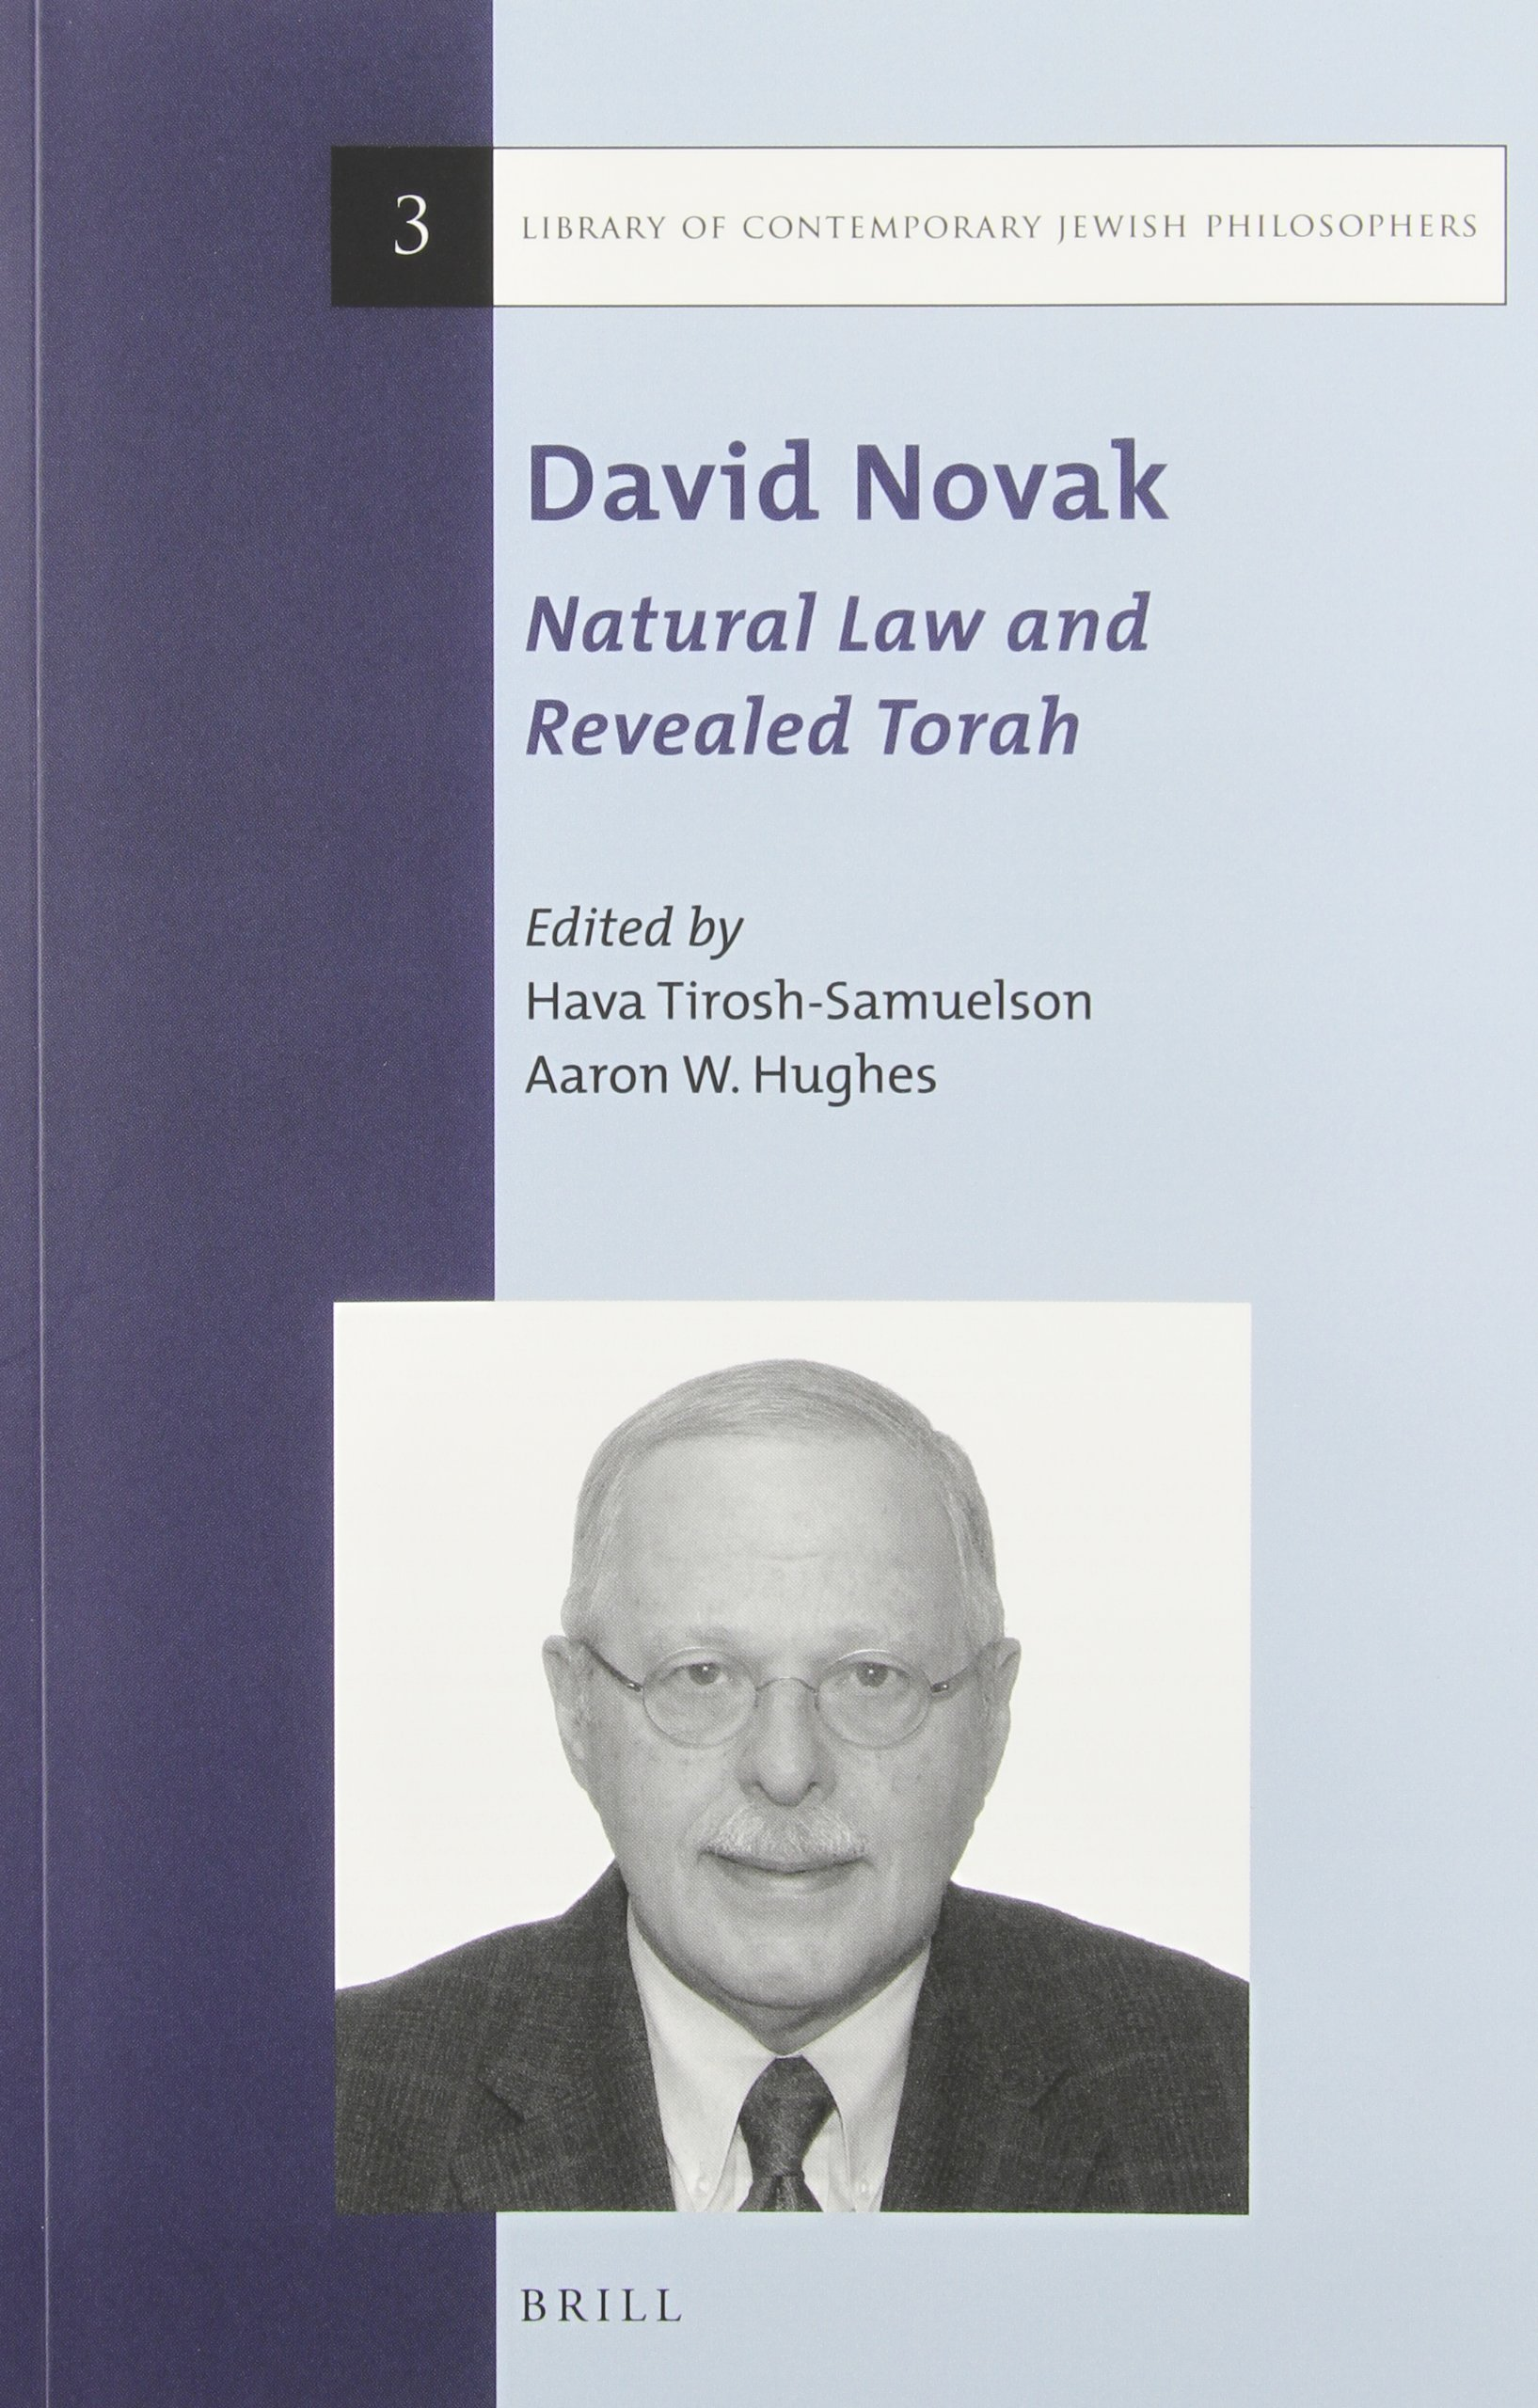 David Novak: Natural Law and Revealed Torah (Library of Contemporary Jewish Philosophers)